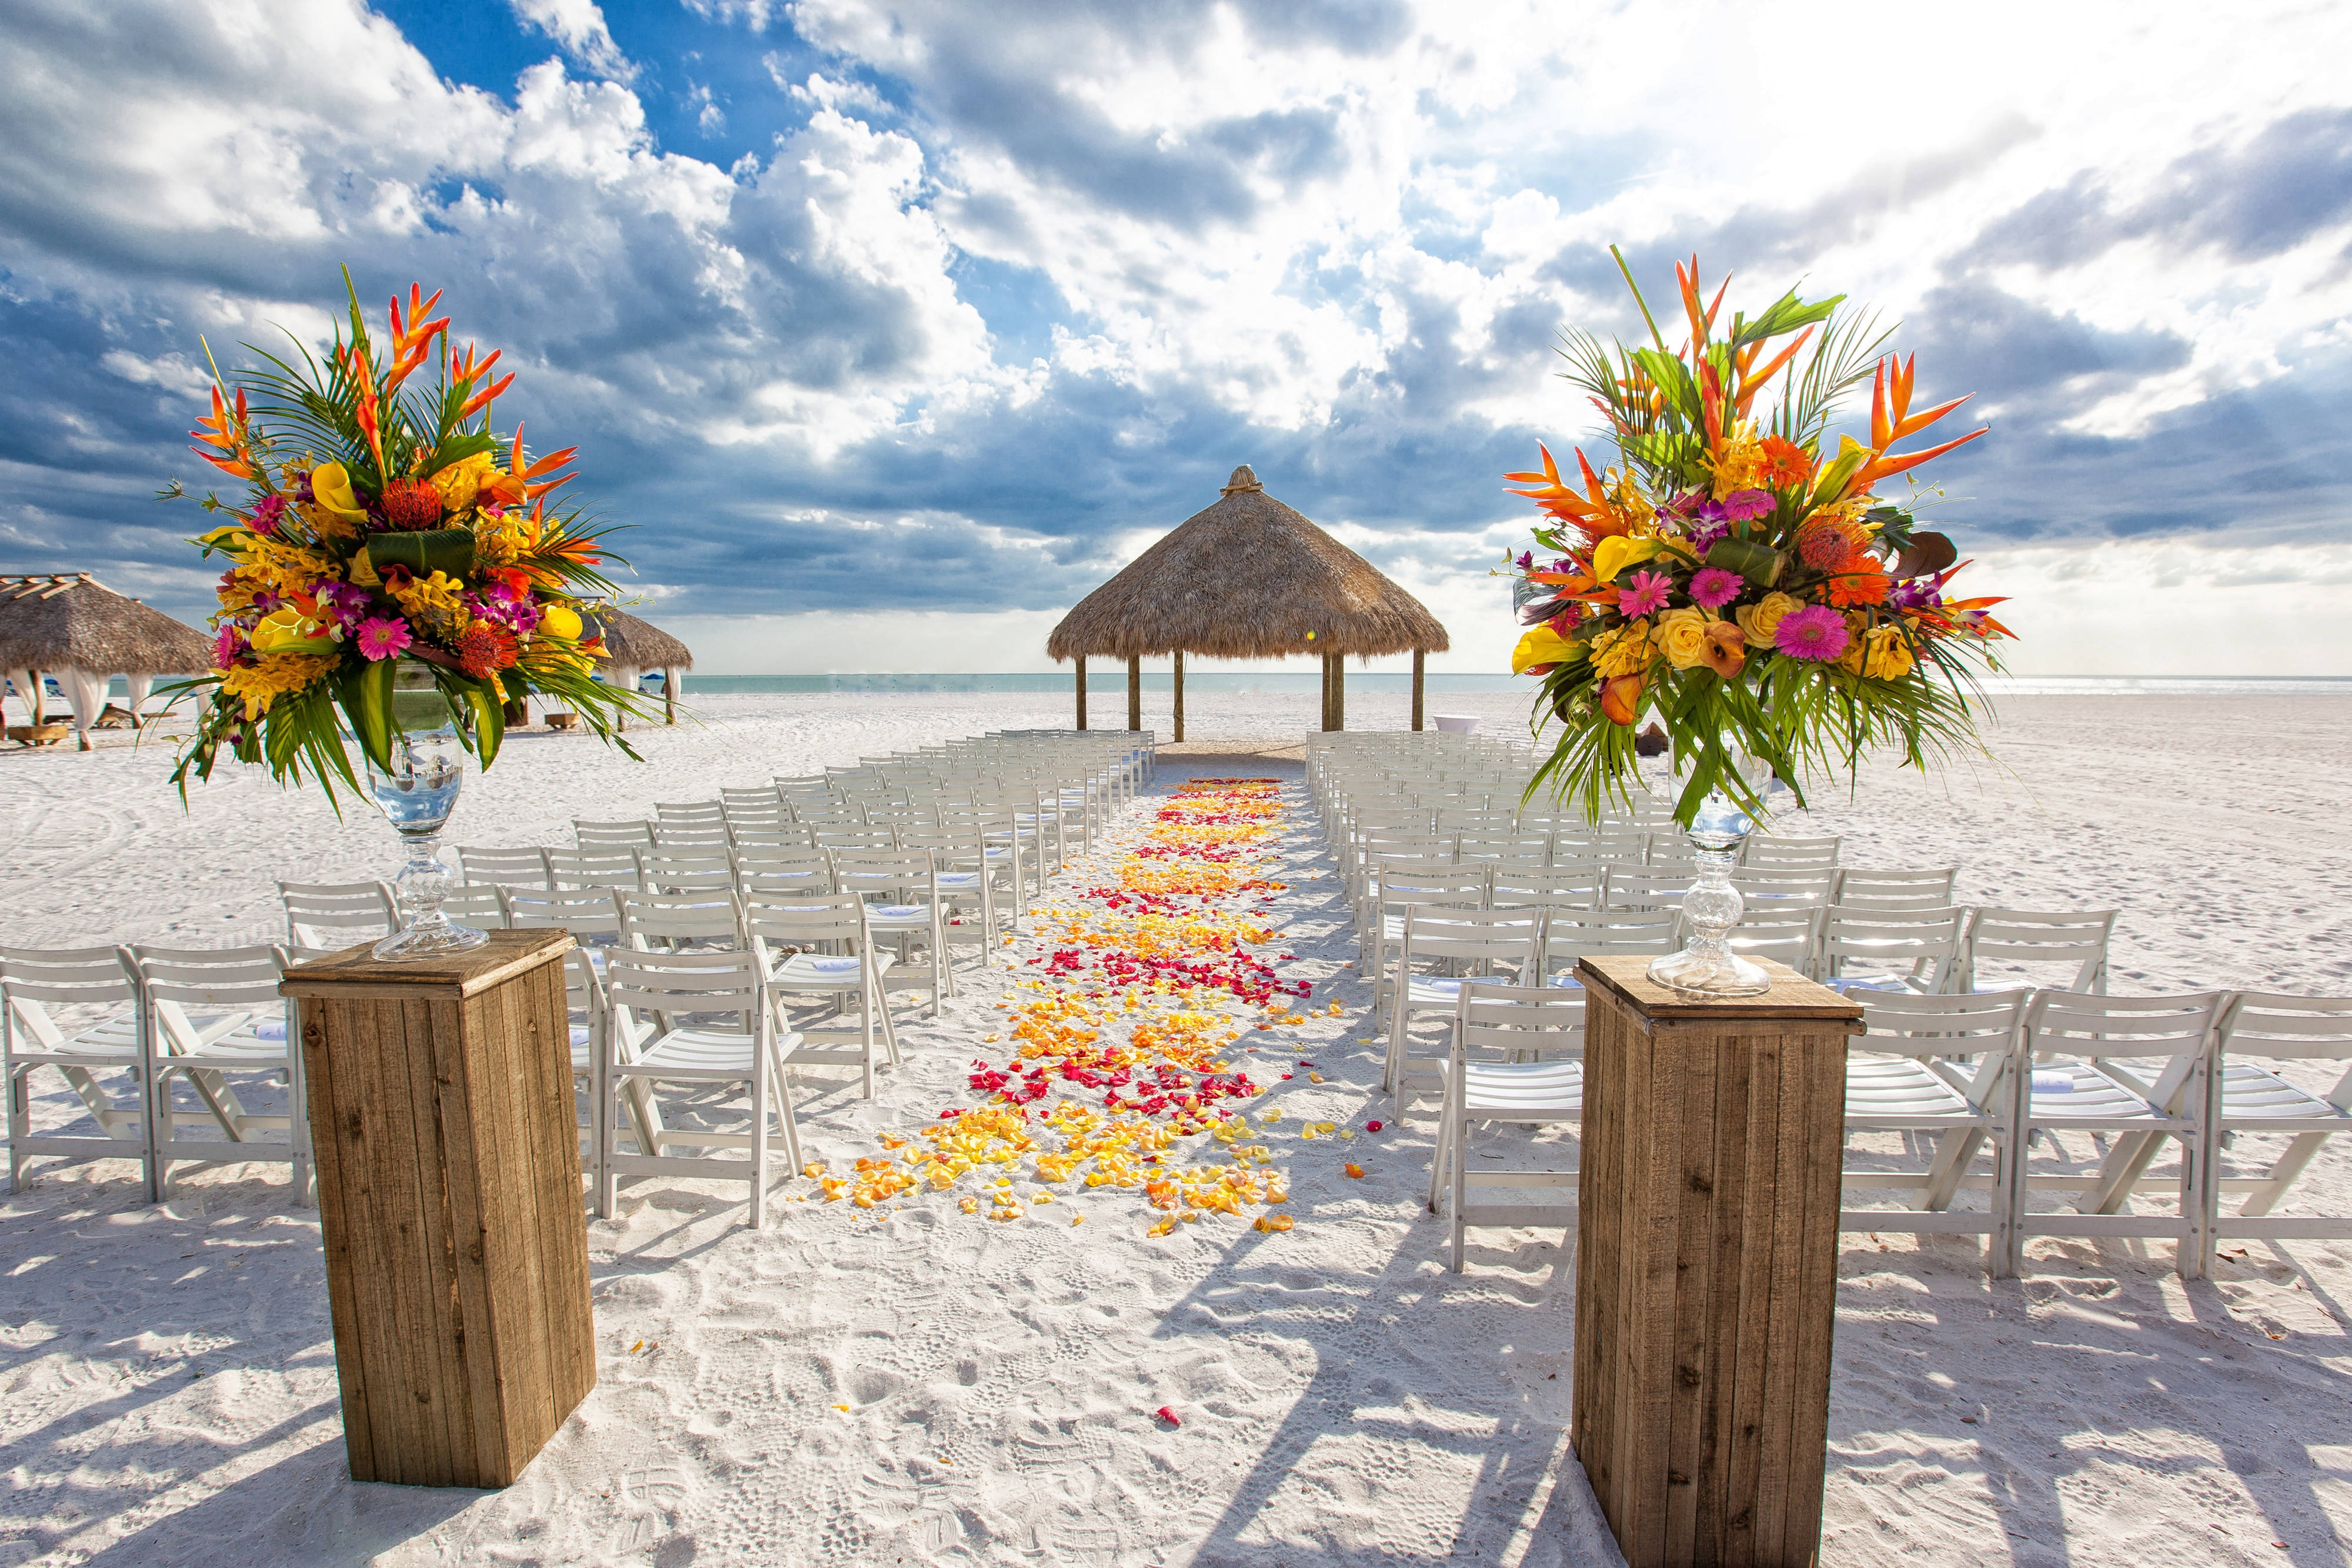 Marco Island Beach Wedding Venue